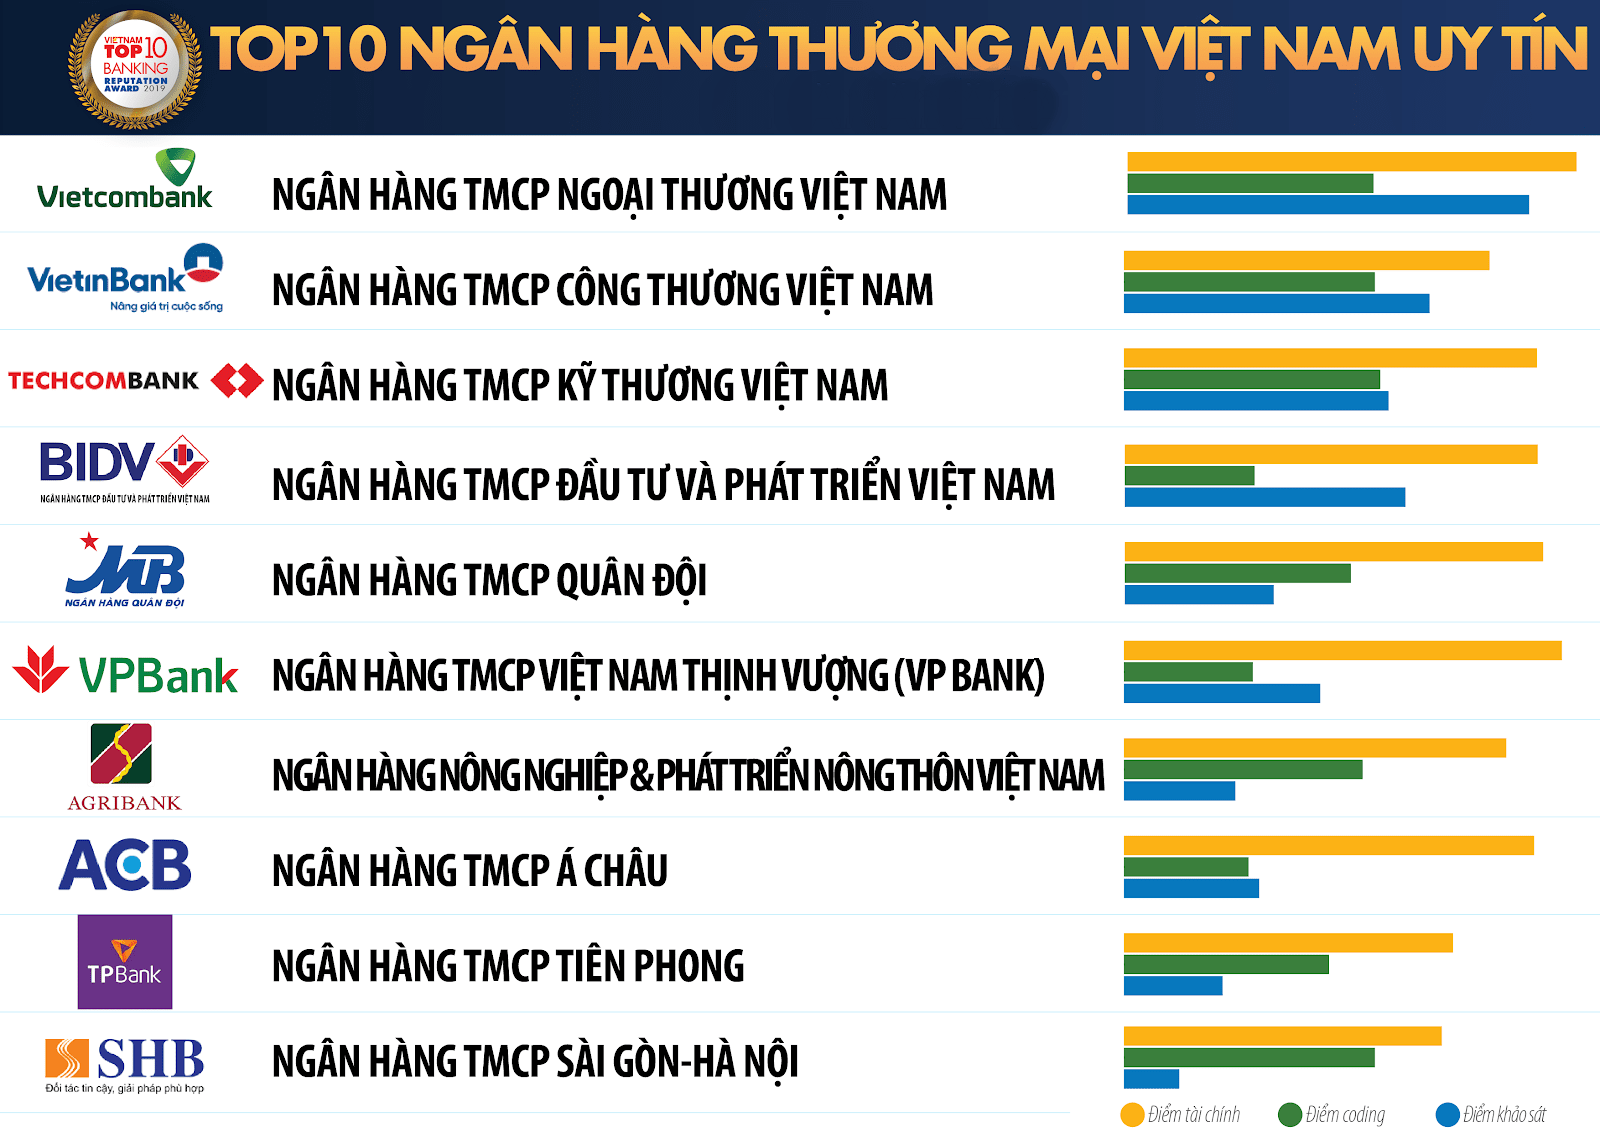 Nen mo the tin dung ngan hang nao